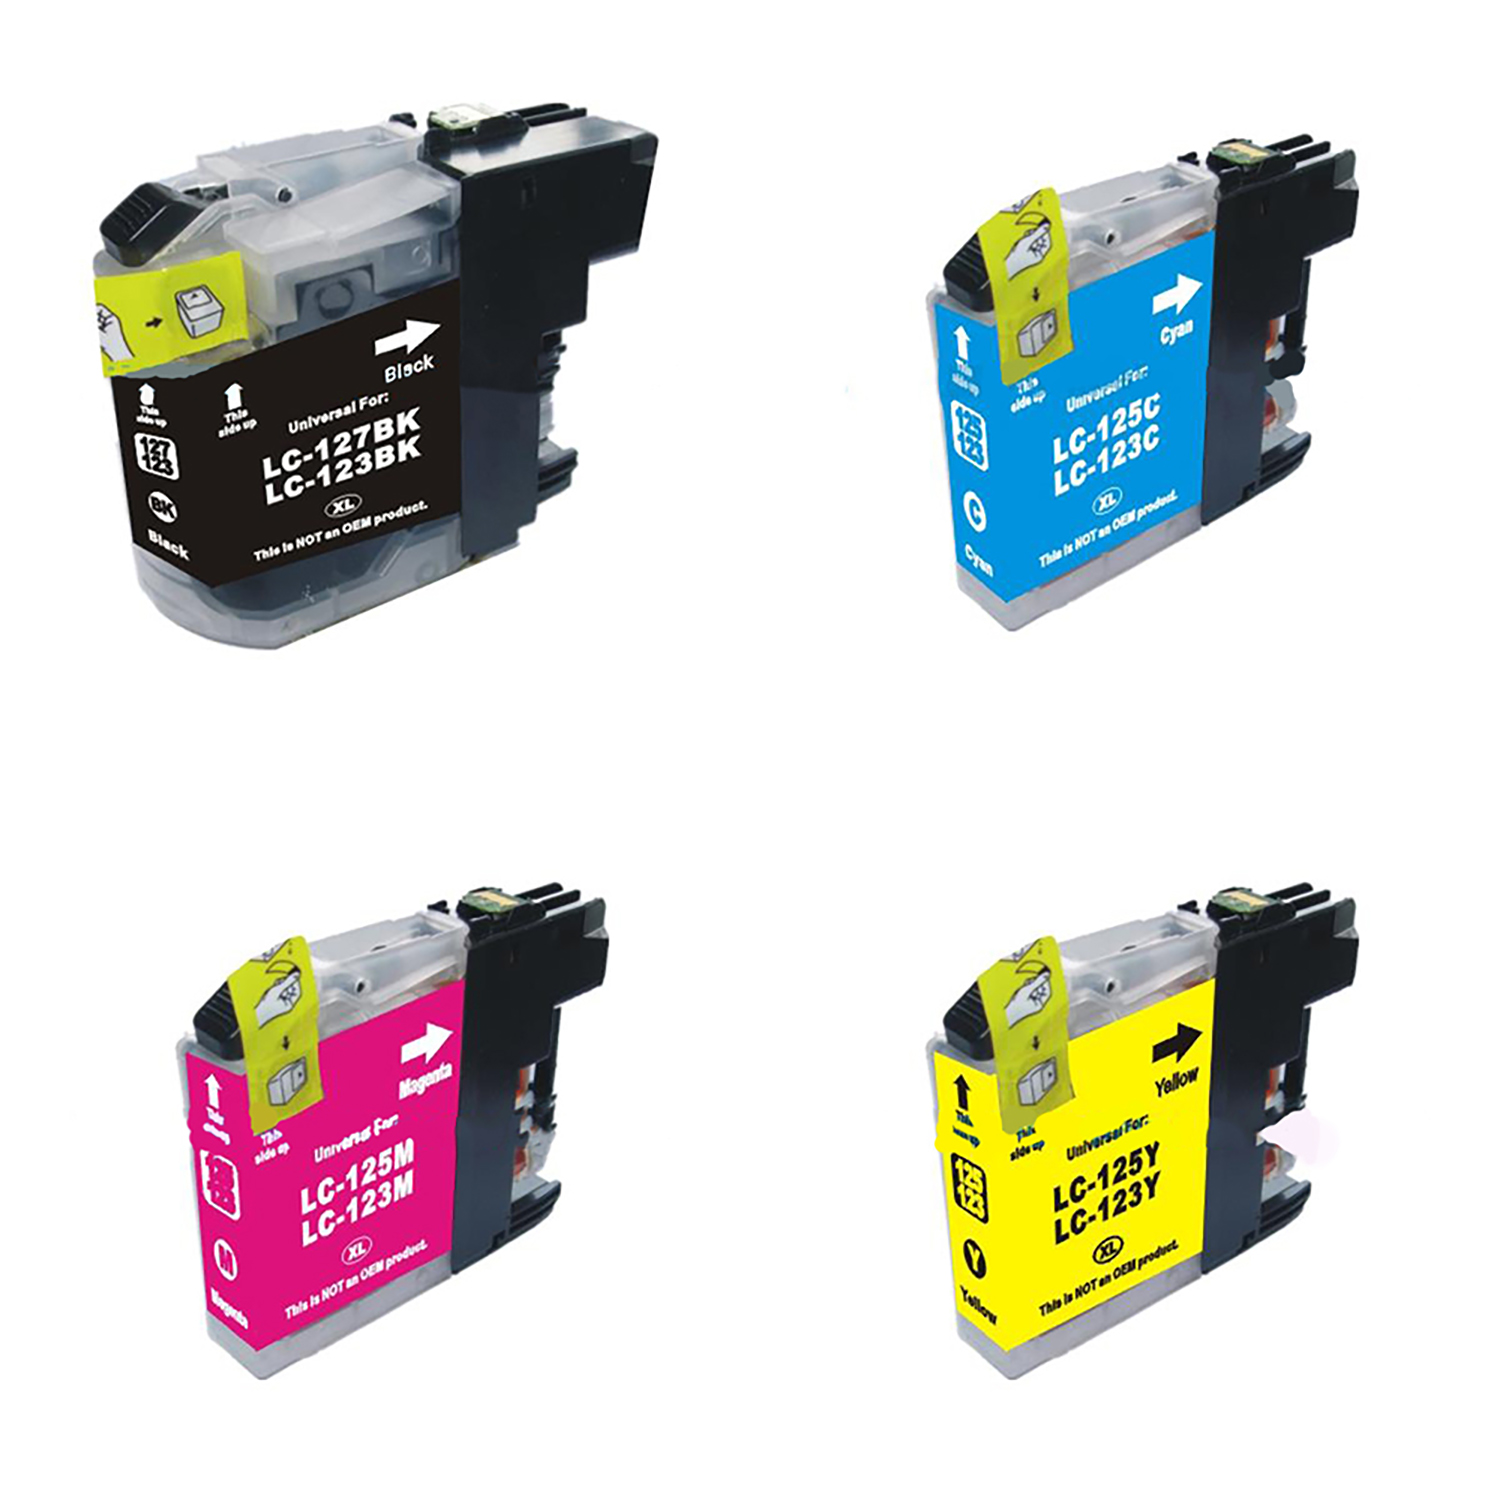 Ink cartridges 5 Star Value Remanufactured Inkjet Cartridge Page Life 600pp B/C/M/Y Brother LC123 Alternative Pack 4